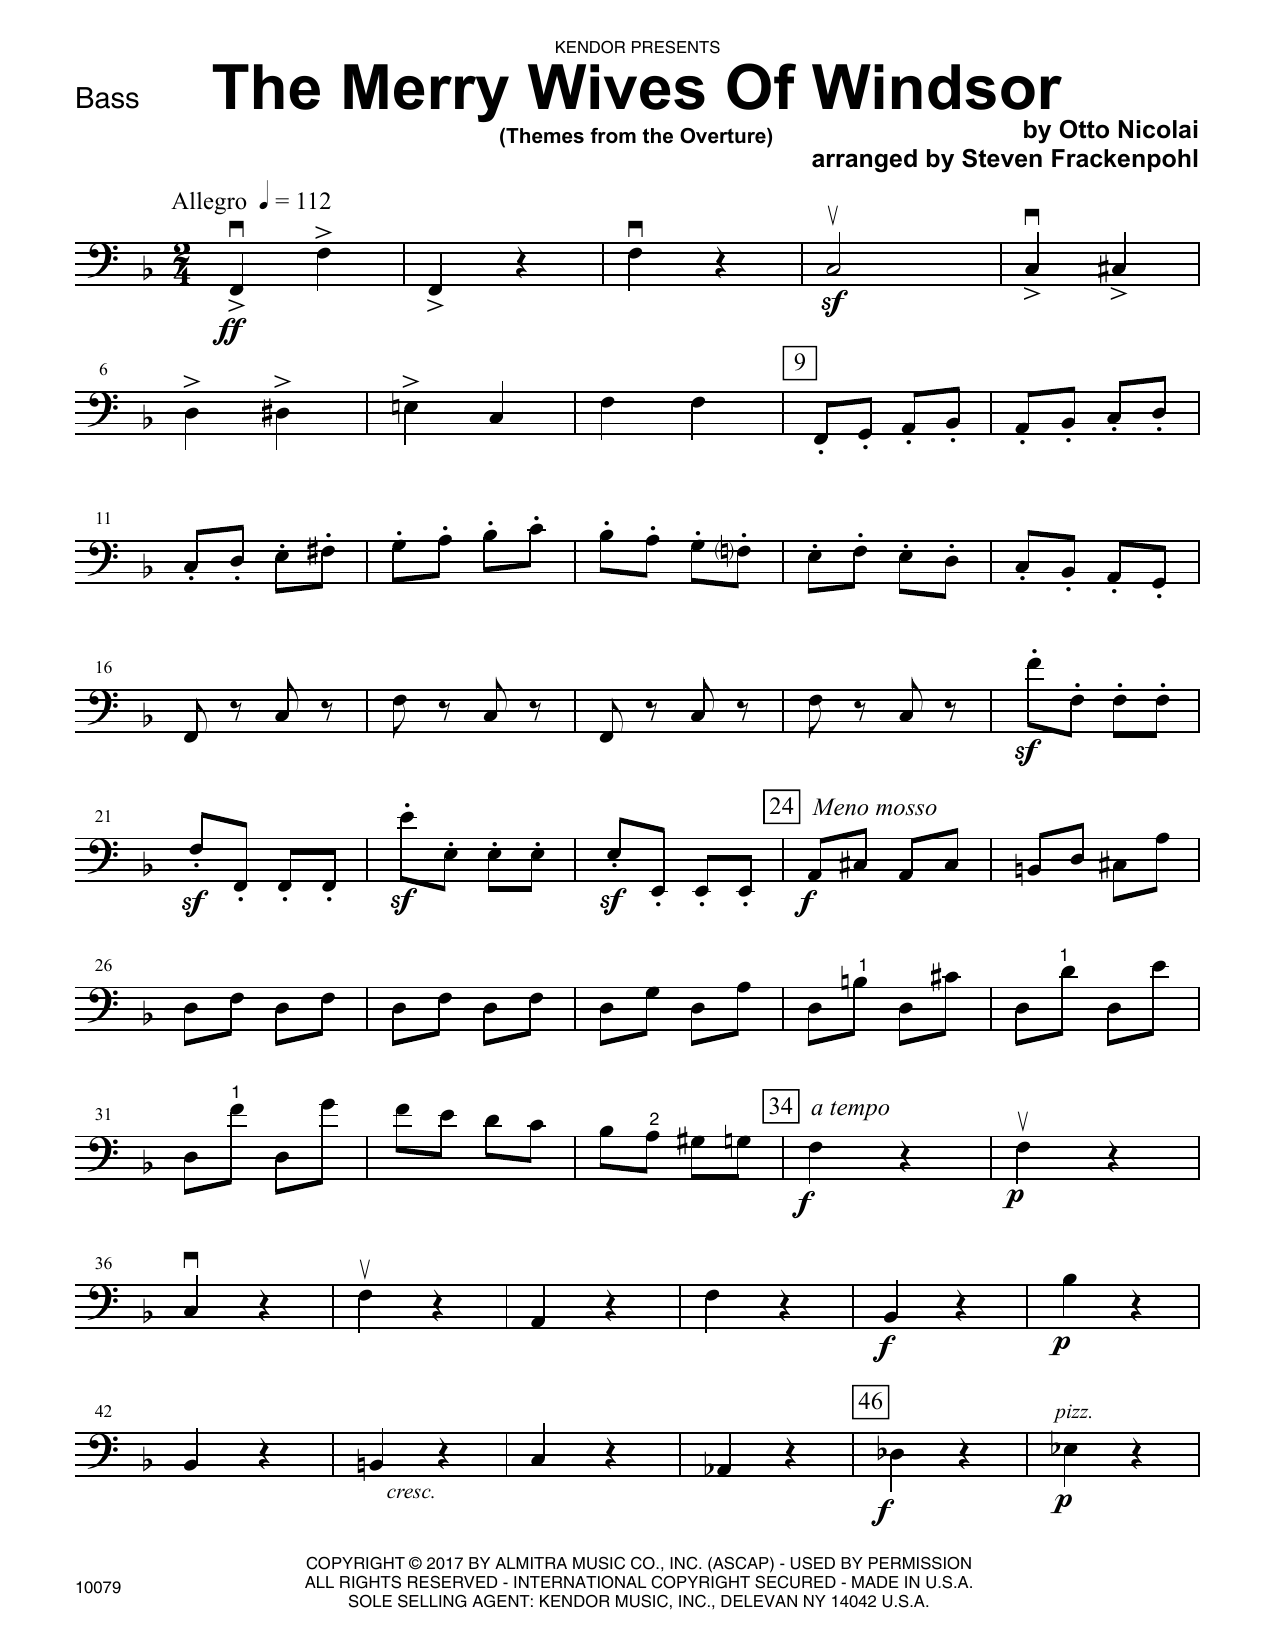 Steven Frackenpohl The Merry Wives Of Windsor (Themes From The Overture) - Bass sheet music notes and chords. Download Printable PDF.